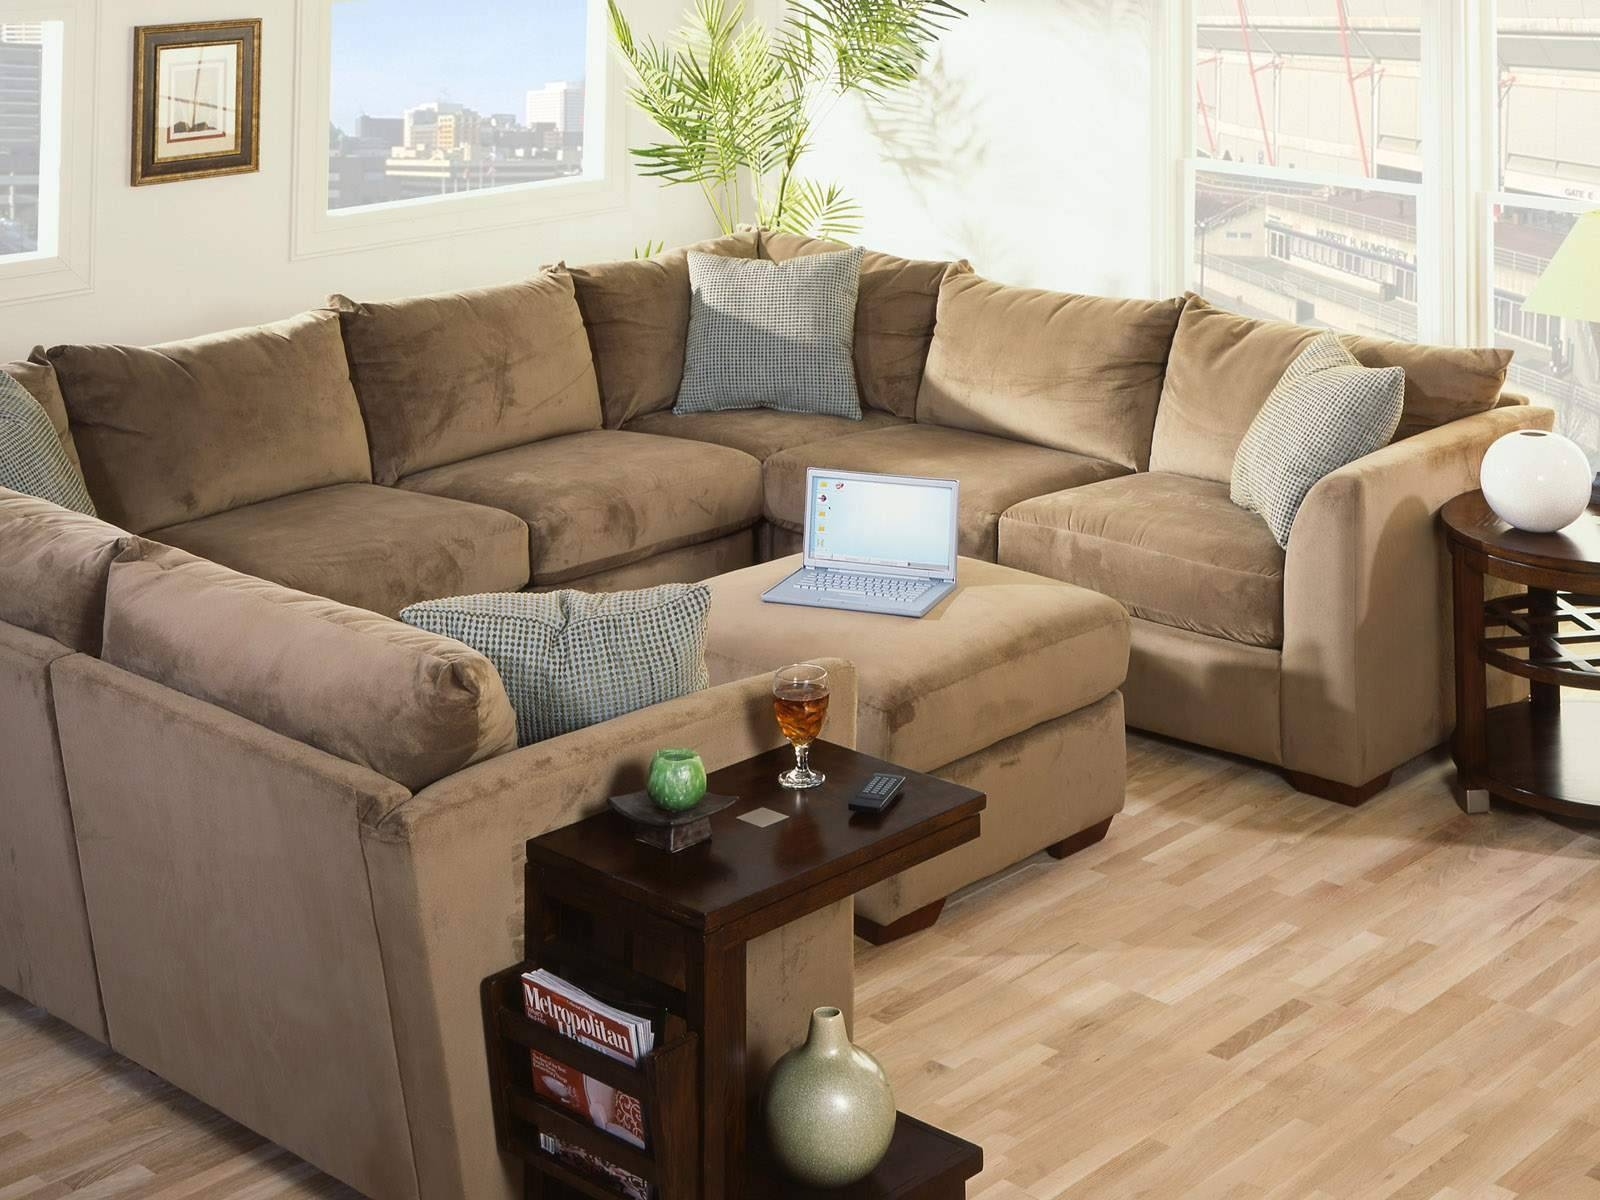 Furniture: Unique And Functional Furniture With Big Lots Sleeper Inside Big Lots Sectional Couches (View 9 of 15)